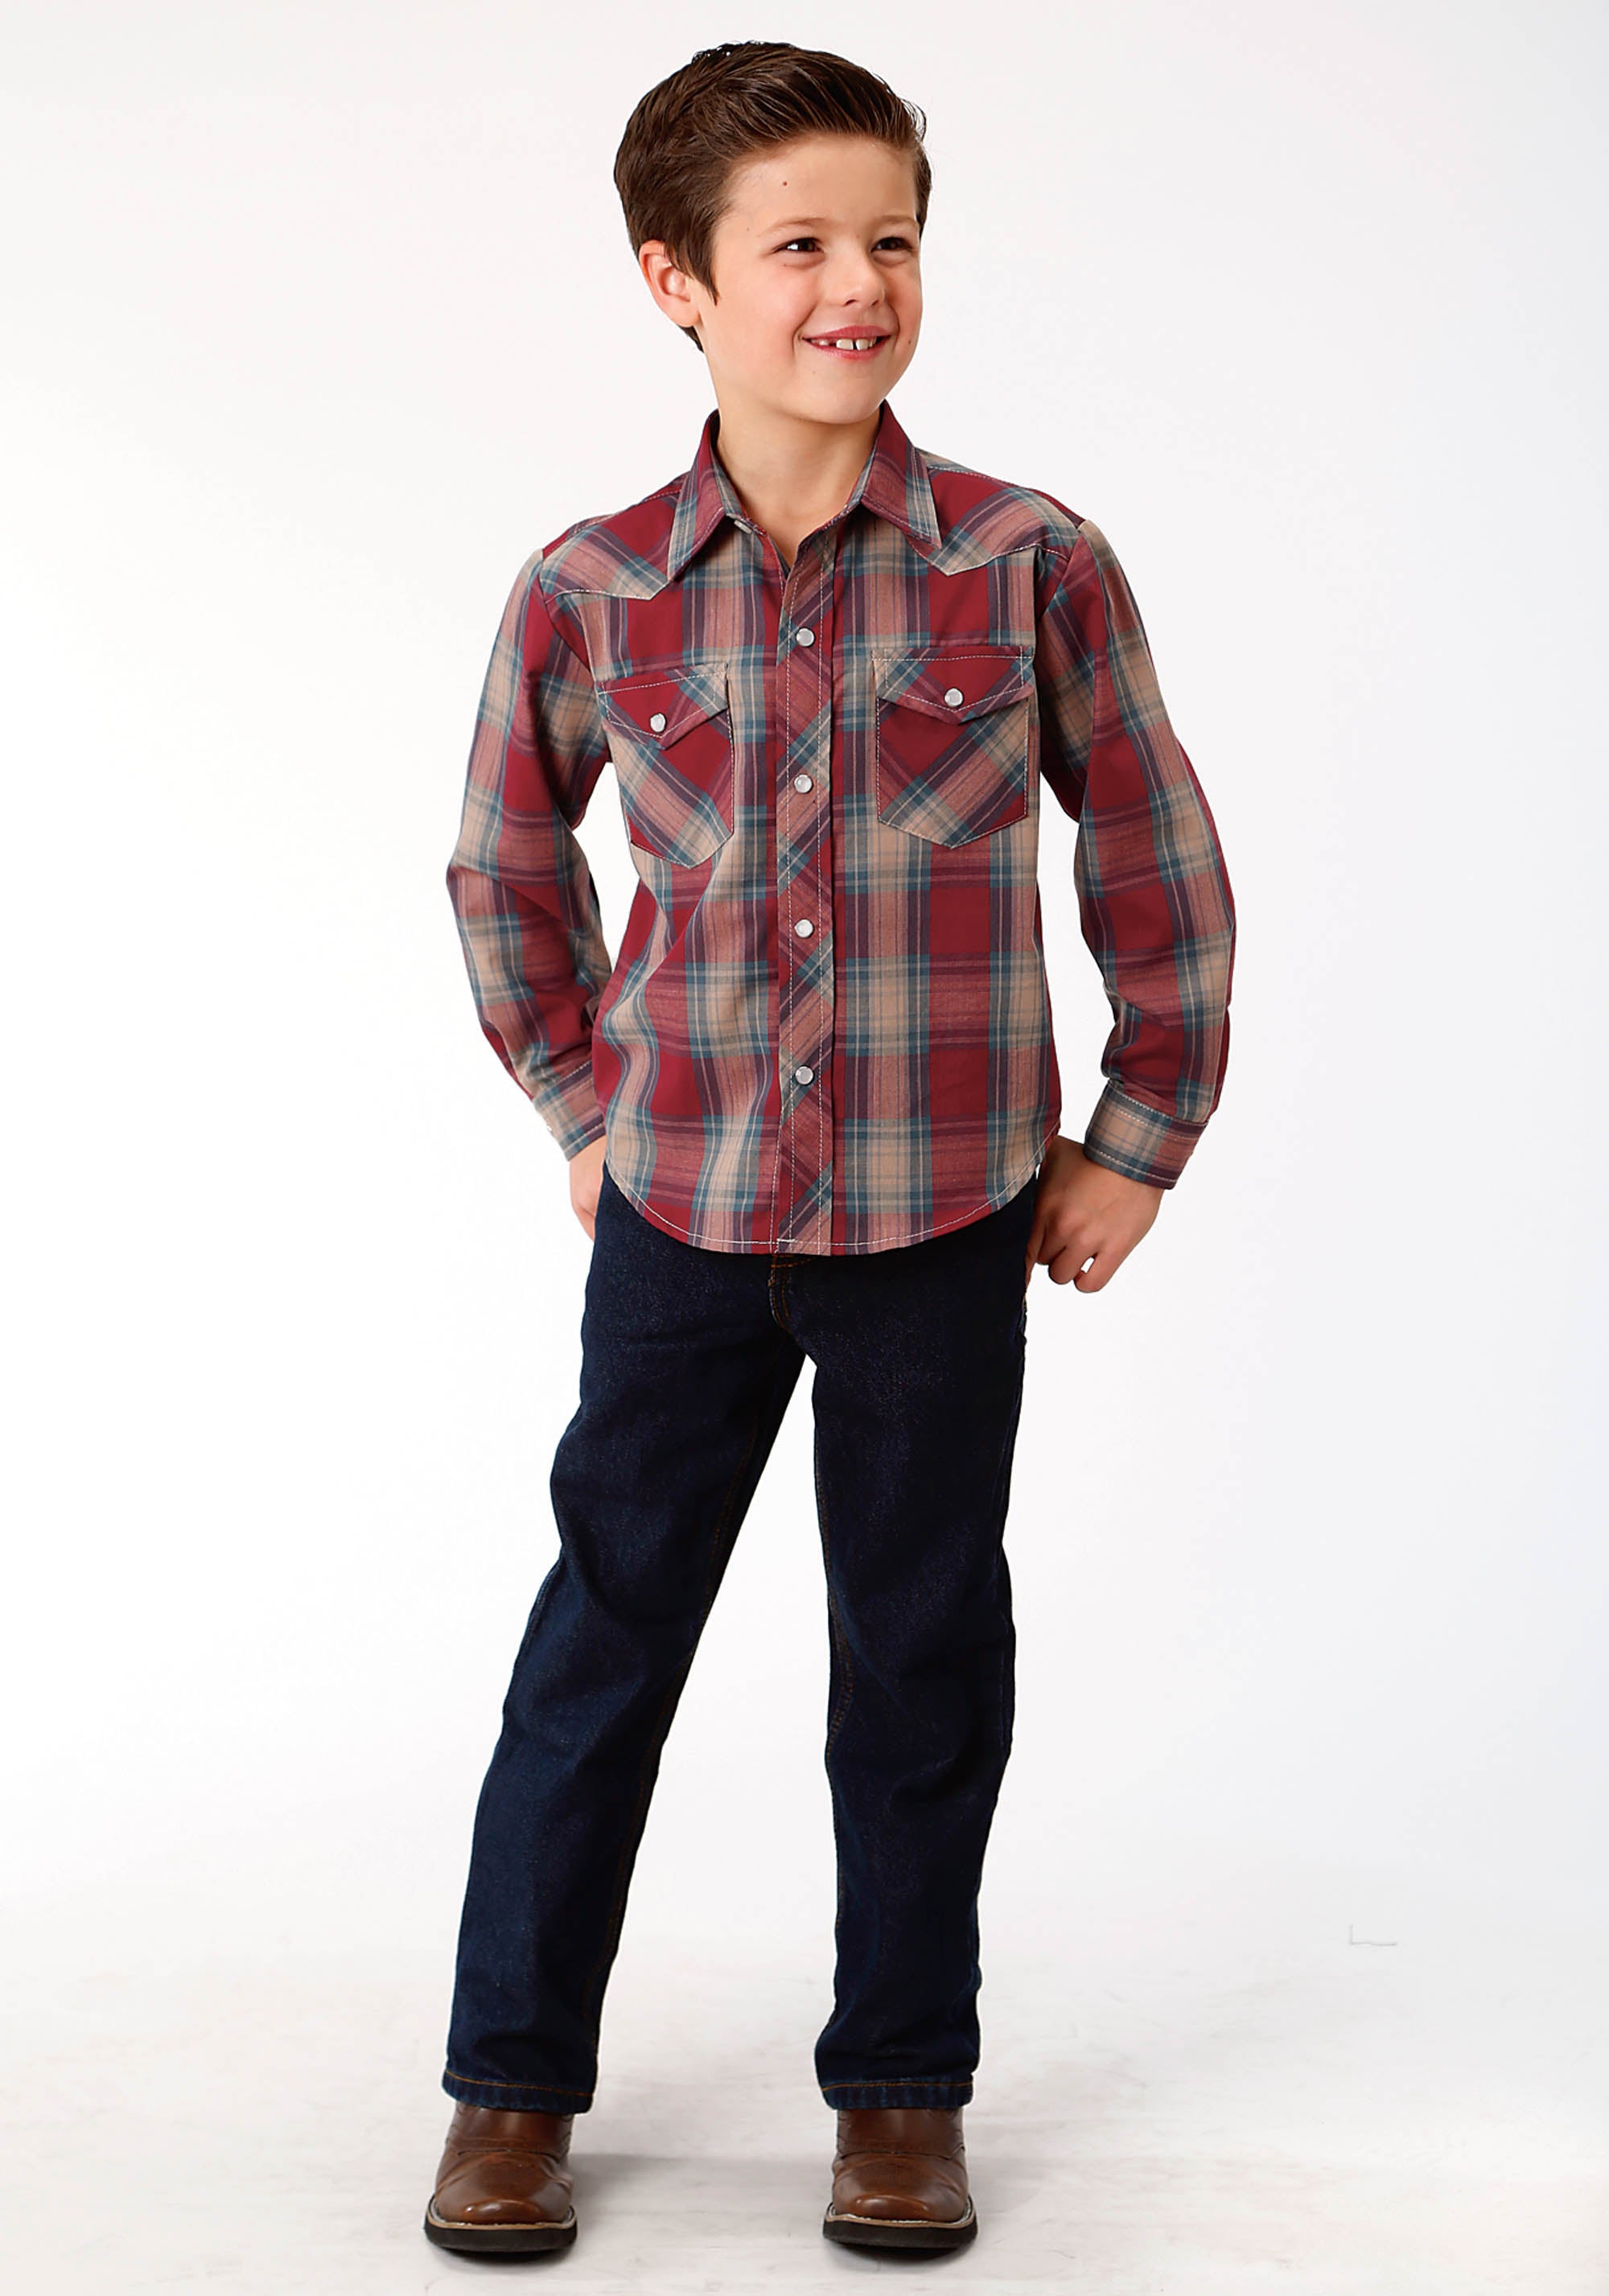 ROPER BOYS RED 0114 RED, DUTCH BLUE, & TAN PLAID KARMAN CLASSICS- 55/45 PLAID LONG SLEEVE